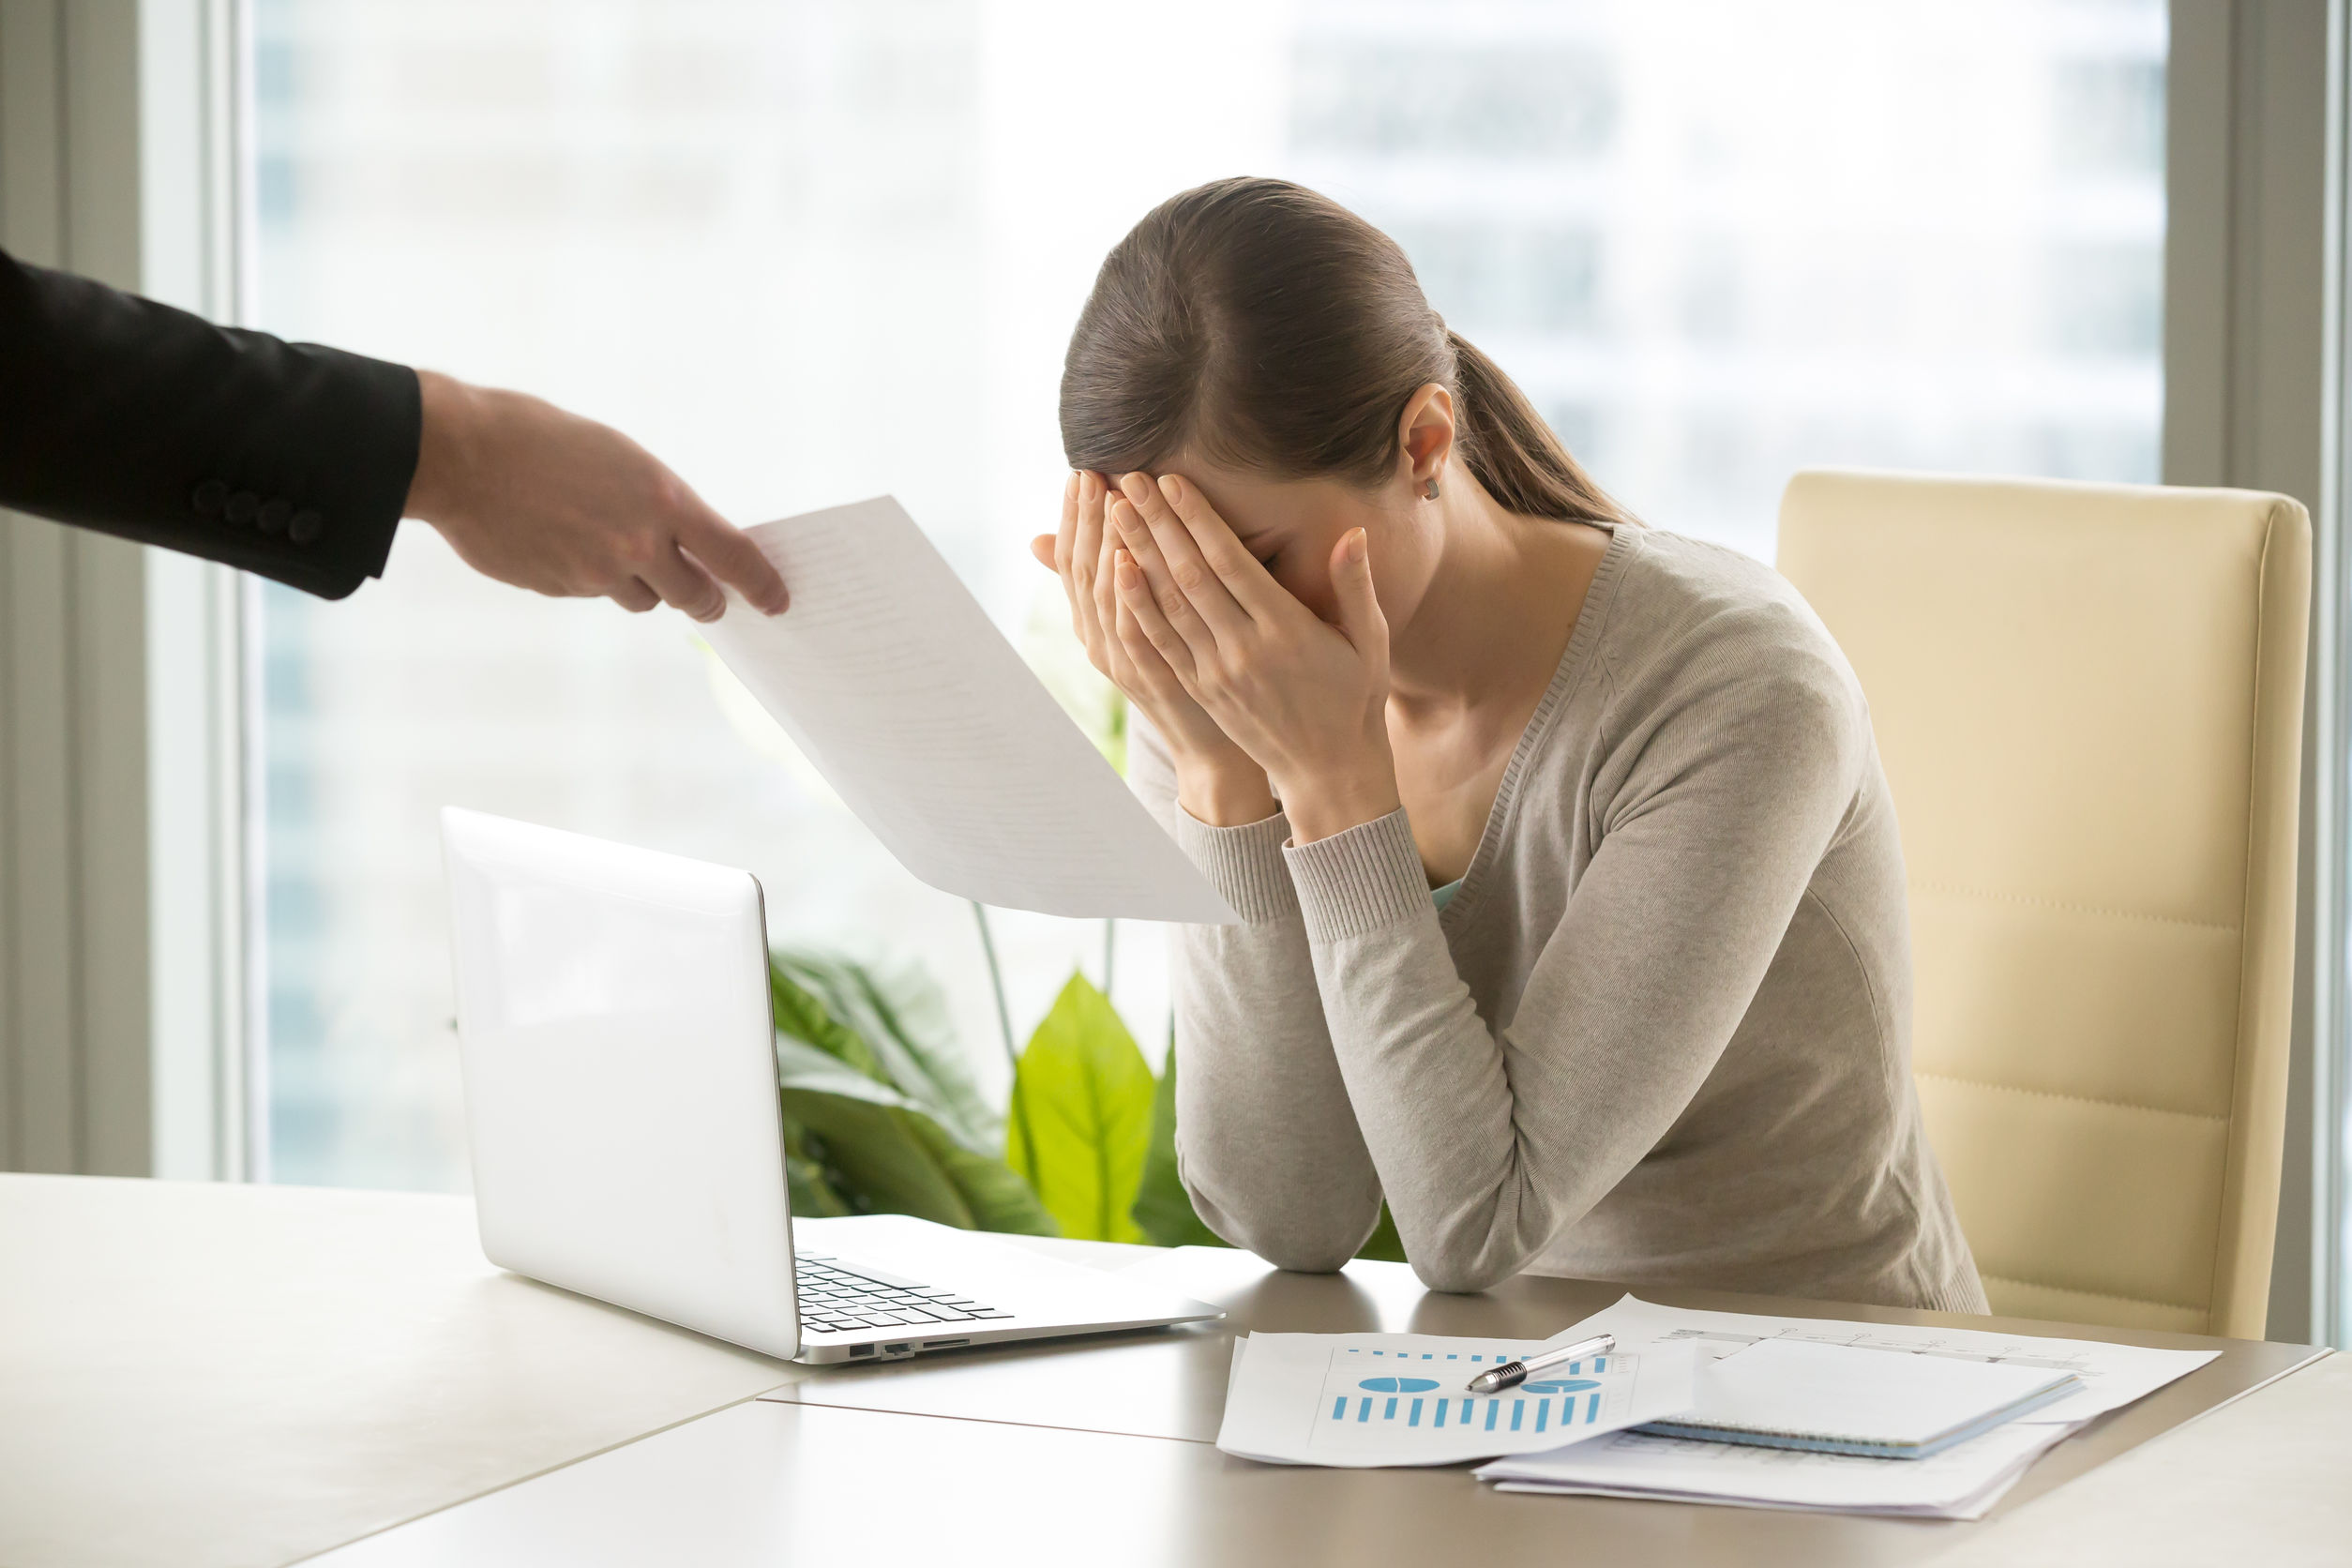 Can Crying Signal a Healthy Workplace?